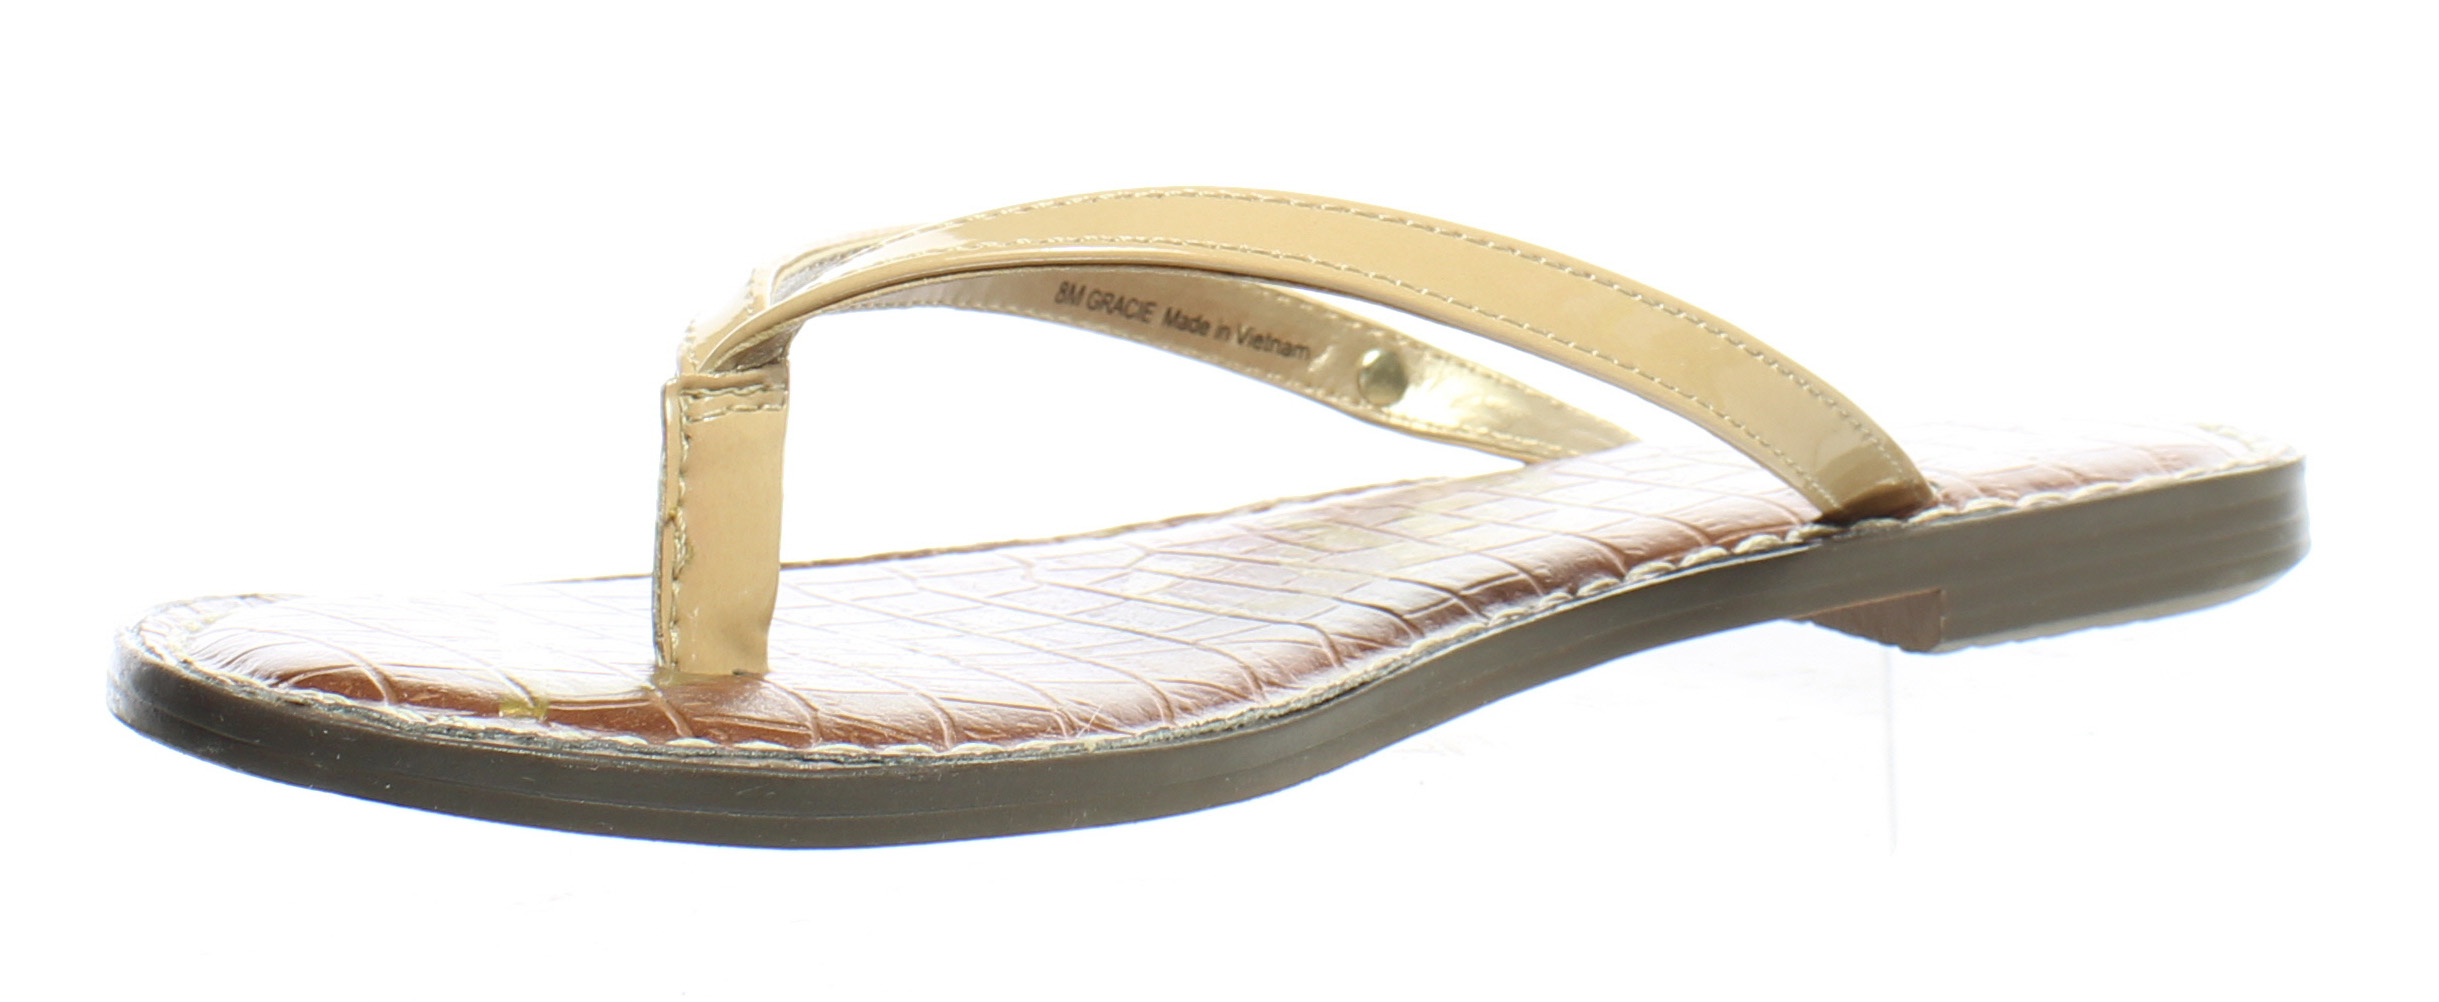 a06c9f1d031f4a ... Picture 2 of 4  Picture 3 of 4  Picture 4 of 4. Sam Edelman Womens  Gracie Almond Patent Flip Flops ...